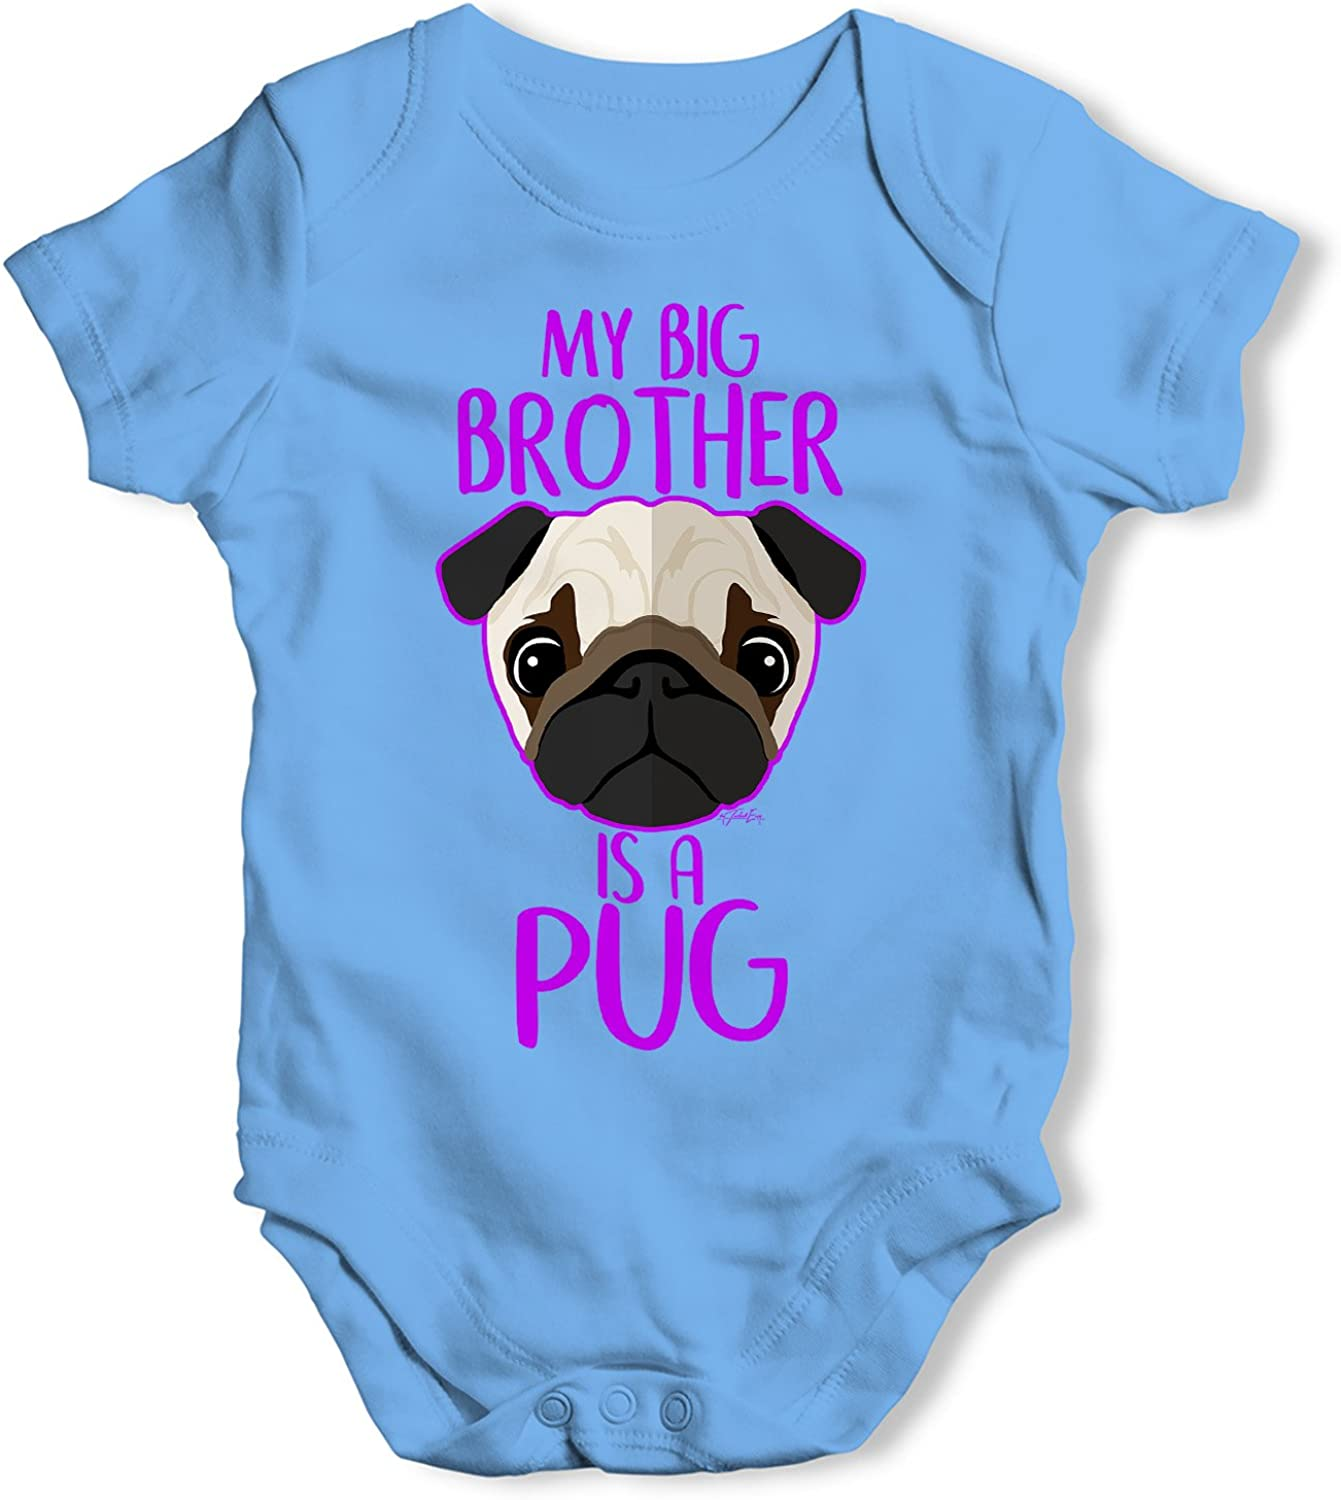 TWISTED ENVY You Need is A Pug Baby Novelty Leggings